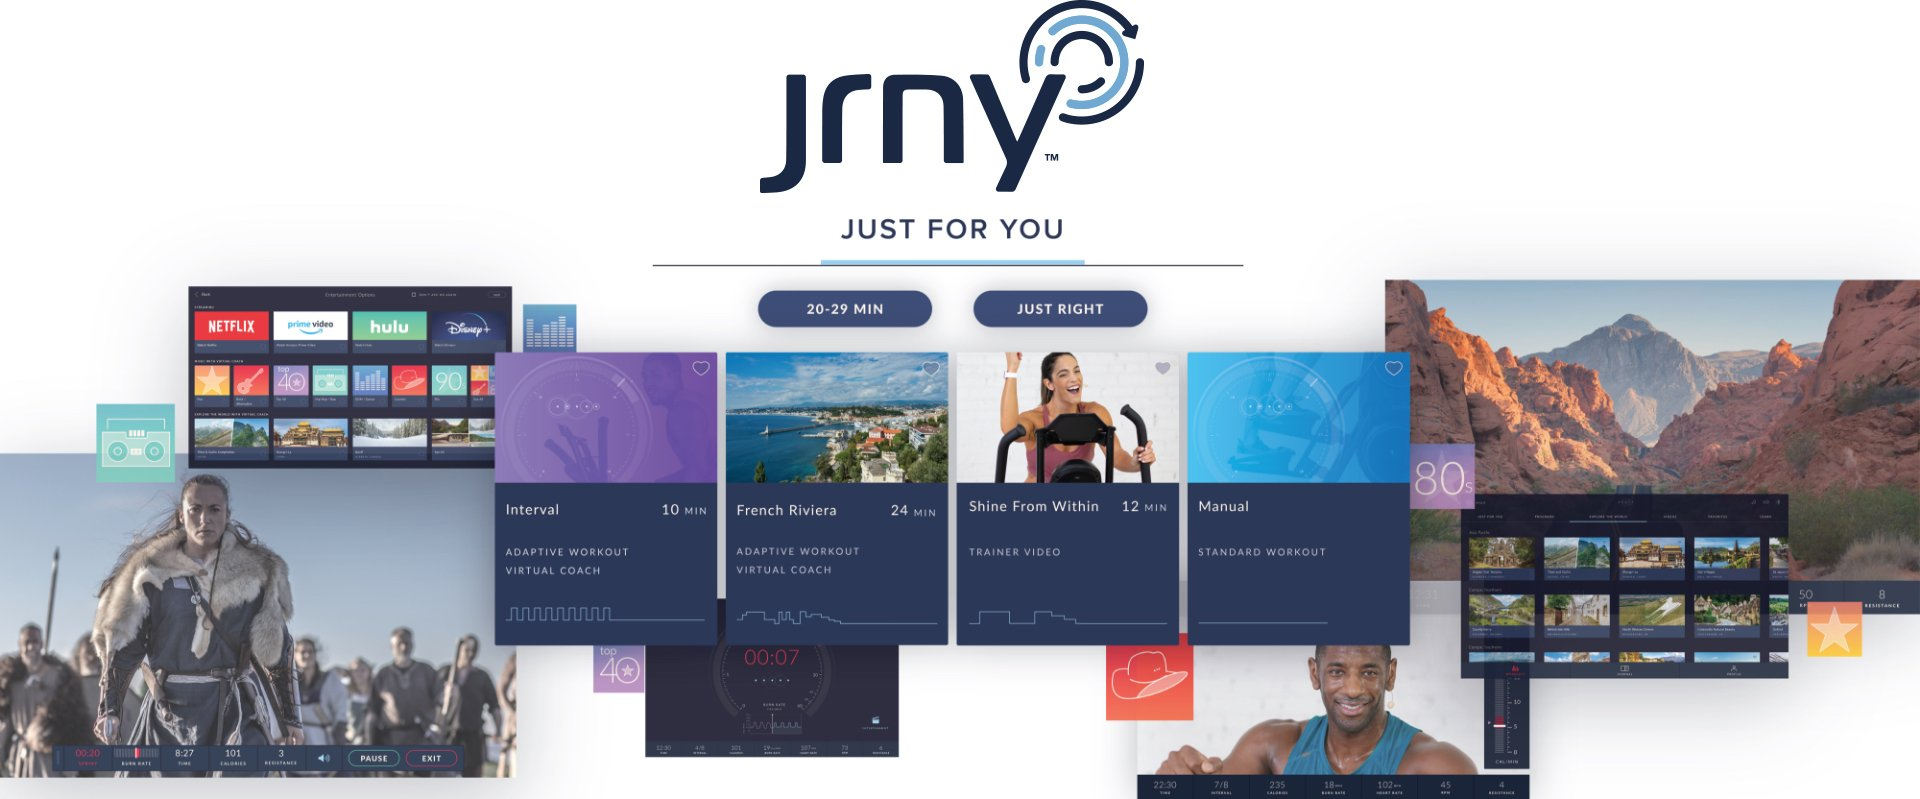 JRNY App - digital assets and screenshots of the JRNY experience